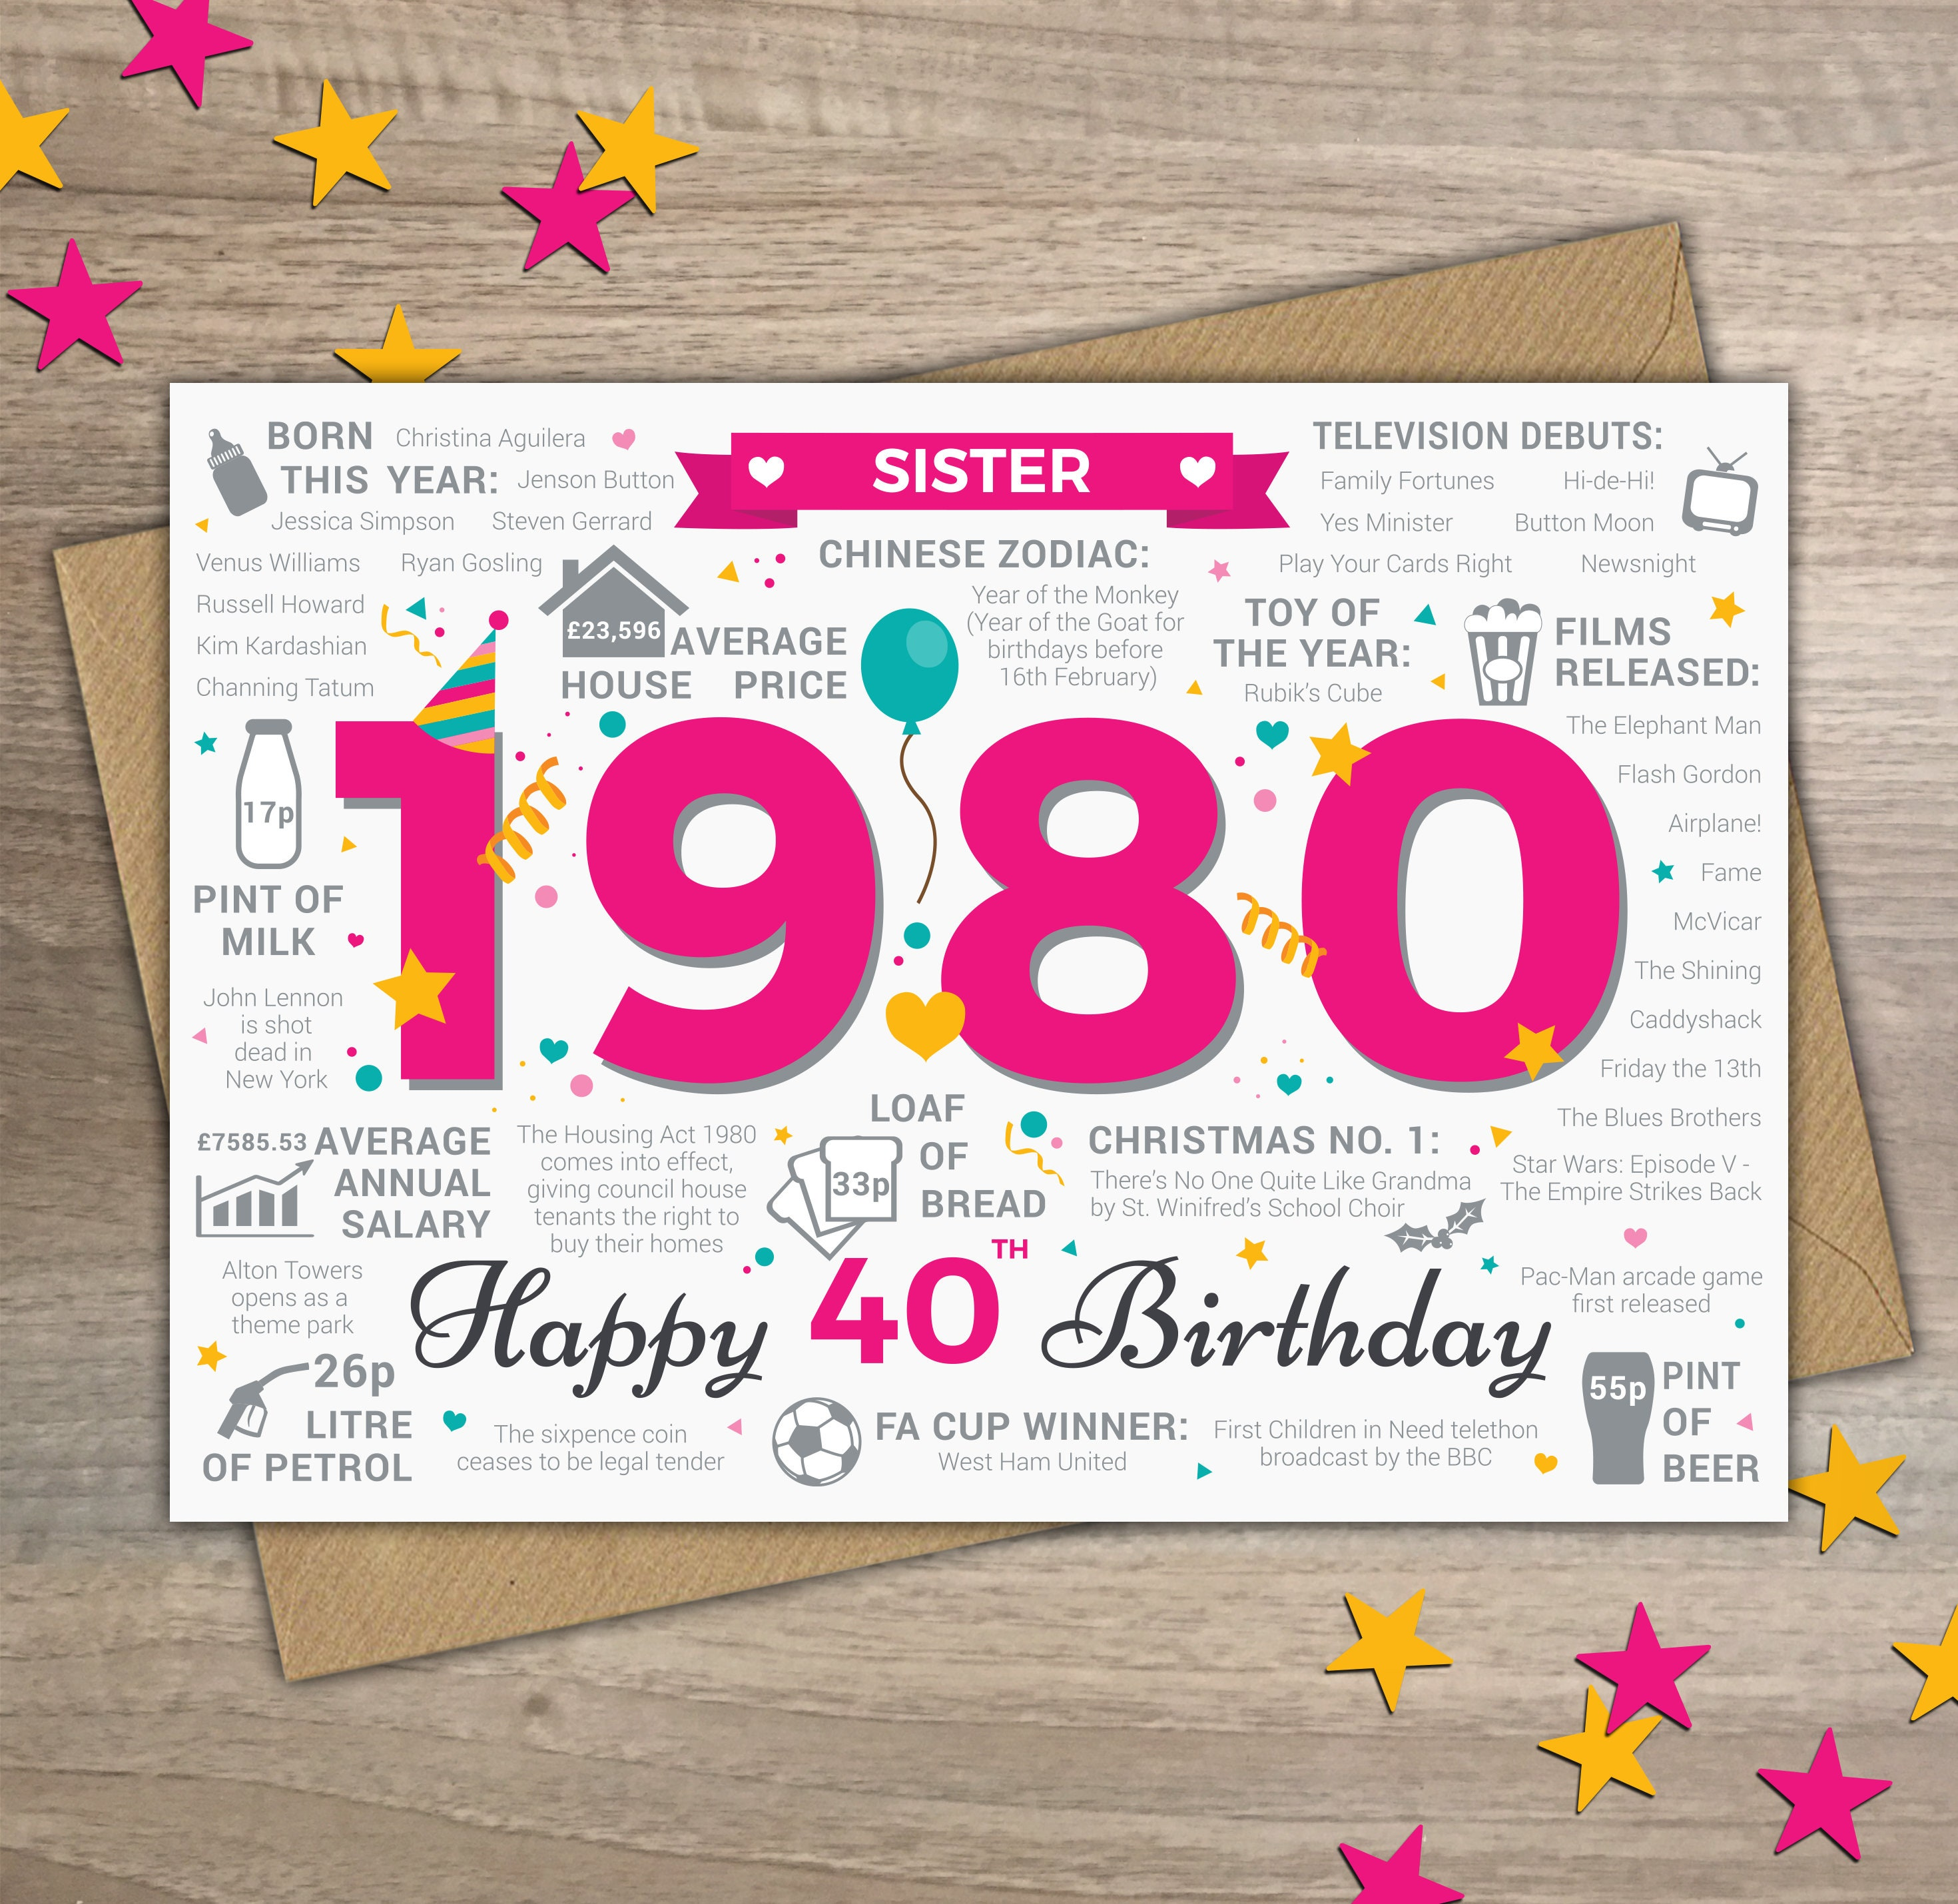 Happy 40th Birthday SISTER Greetings Card Born In 1980